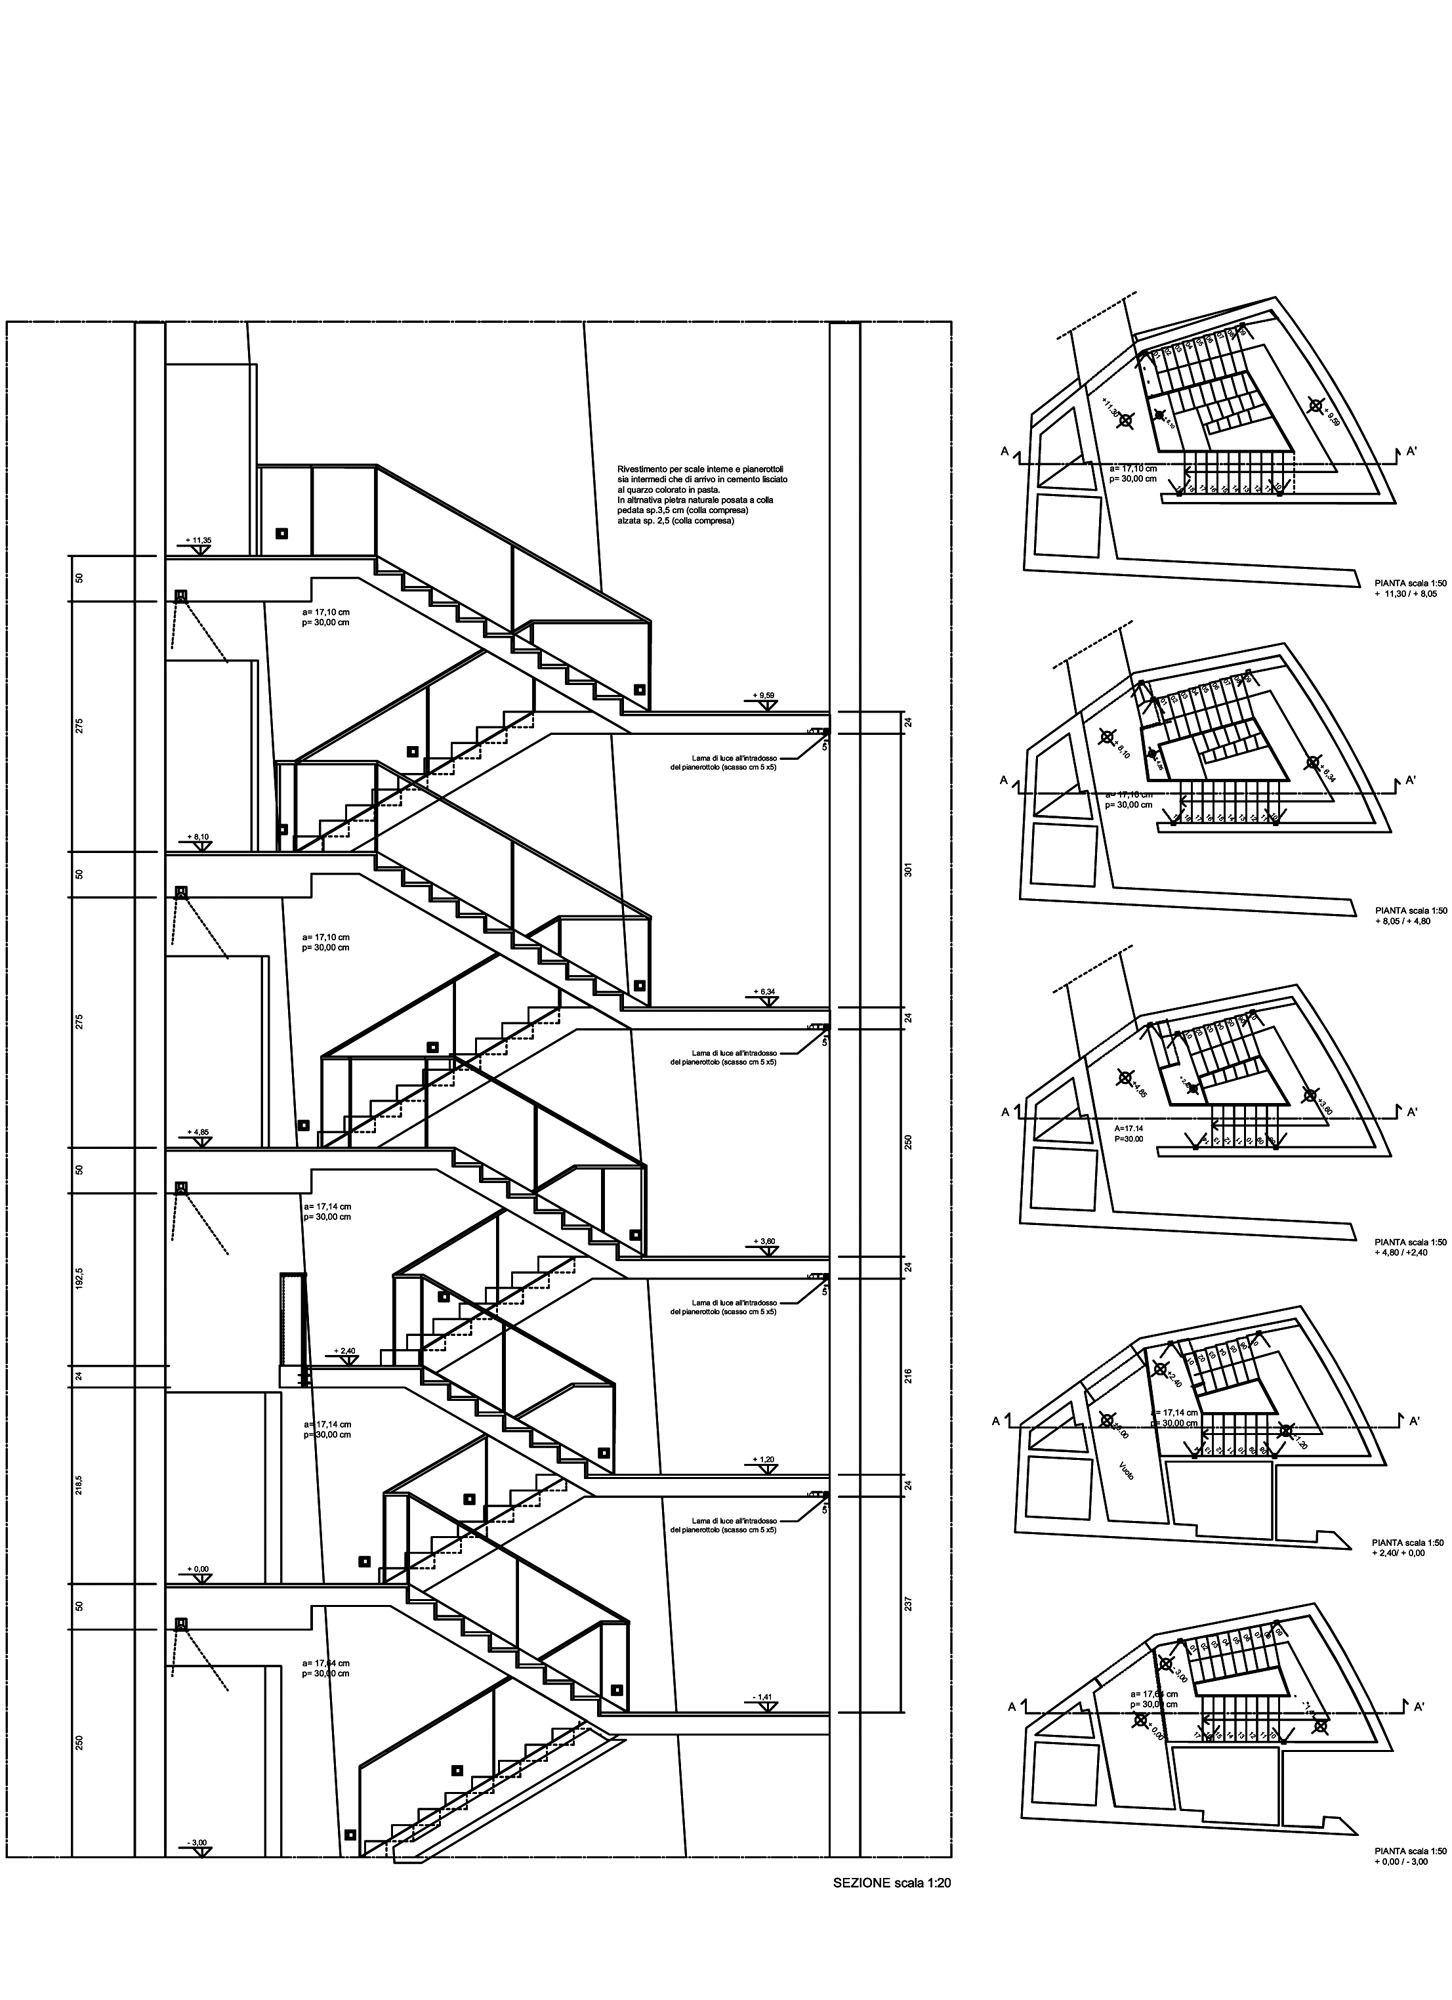 hight resolution of ex ducati mario cucinella architects construction documents construction drawings stairs diagram orthographic